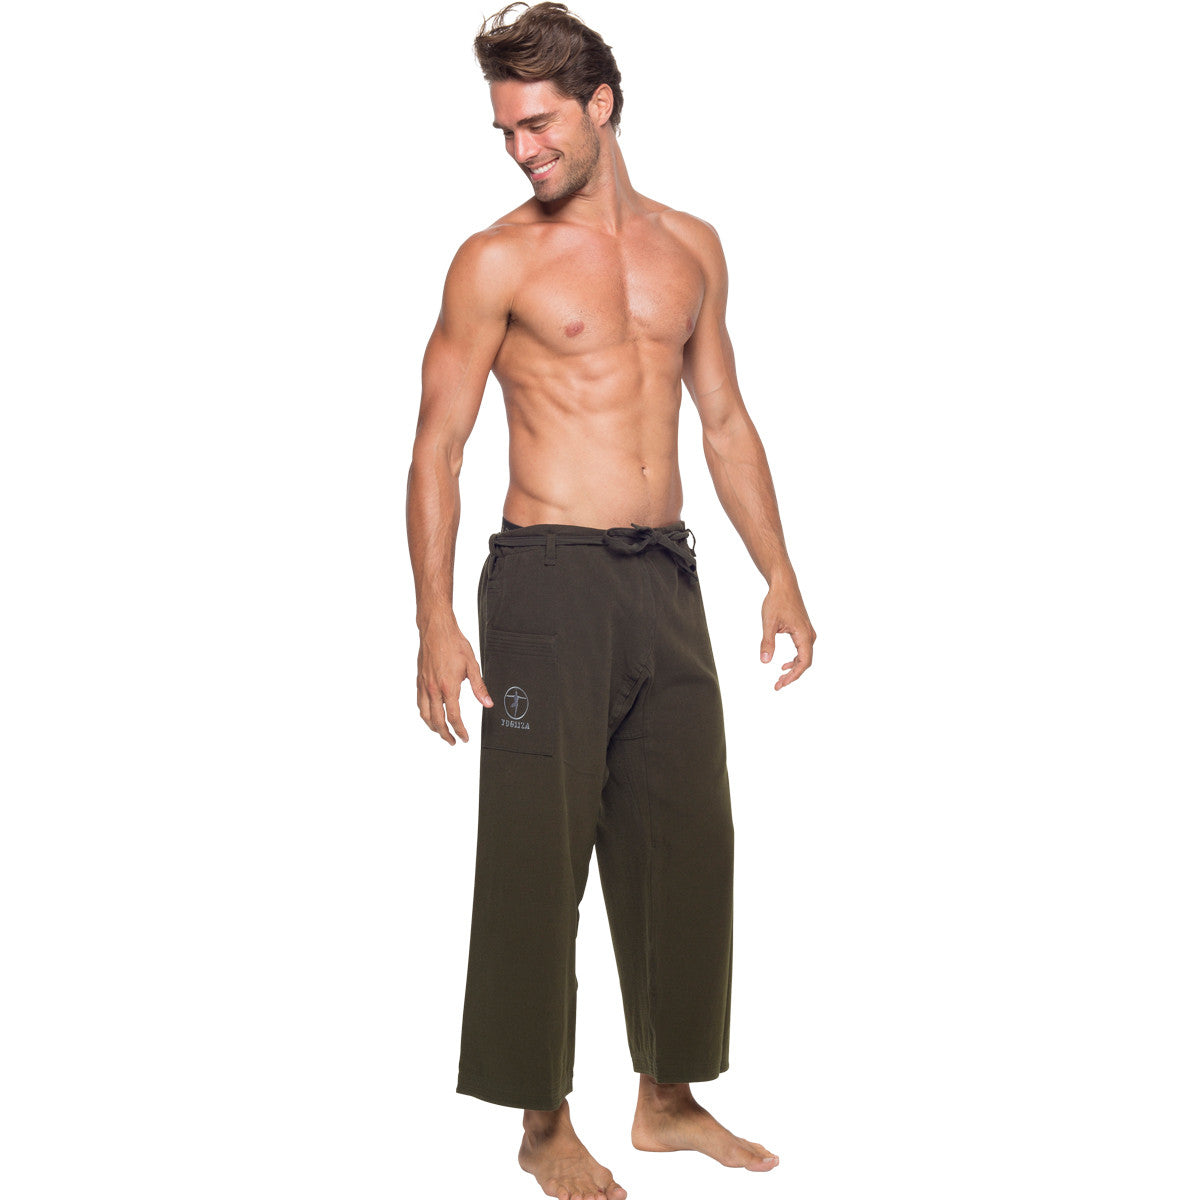 Yoga Pants For Men KjR26xqt